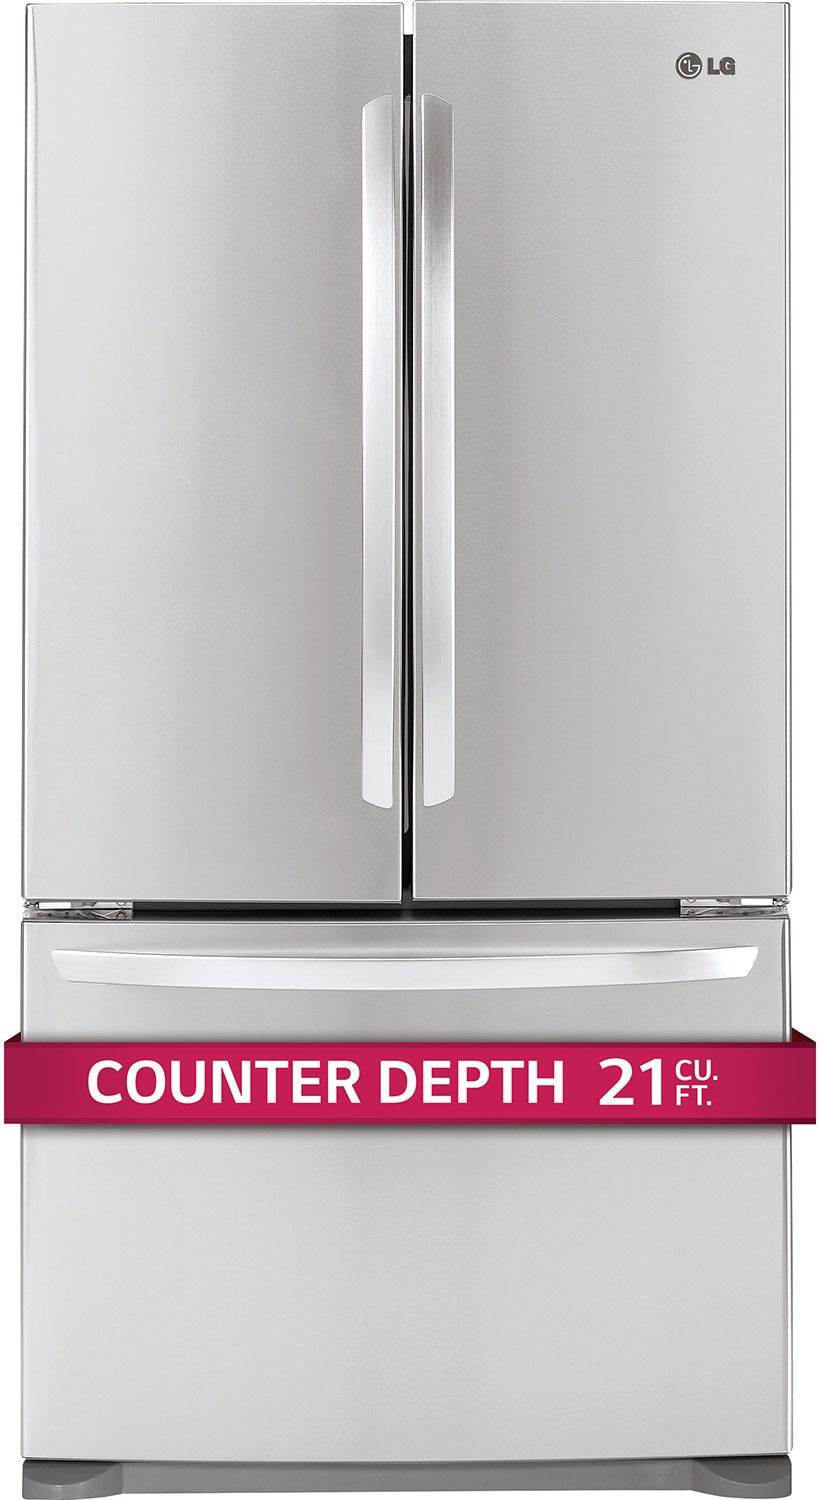 Lg Stainless Steel Counter Depth French Door Refrigerator